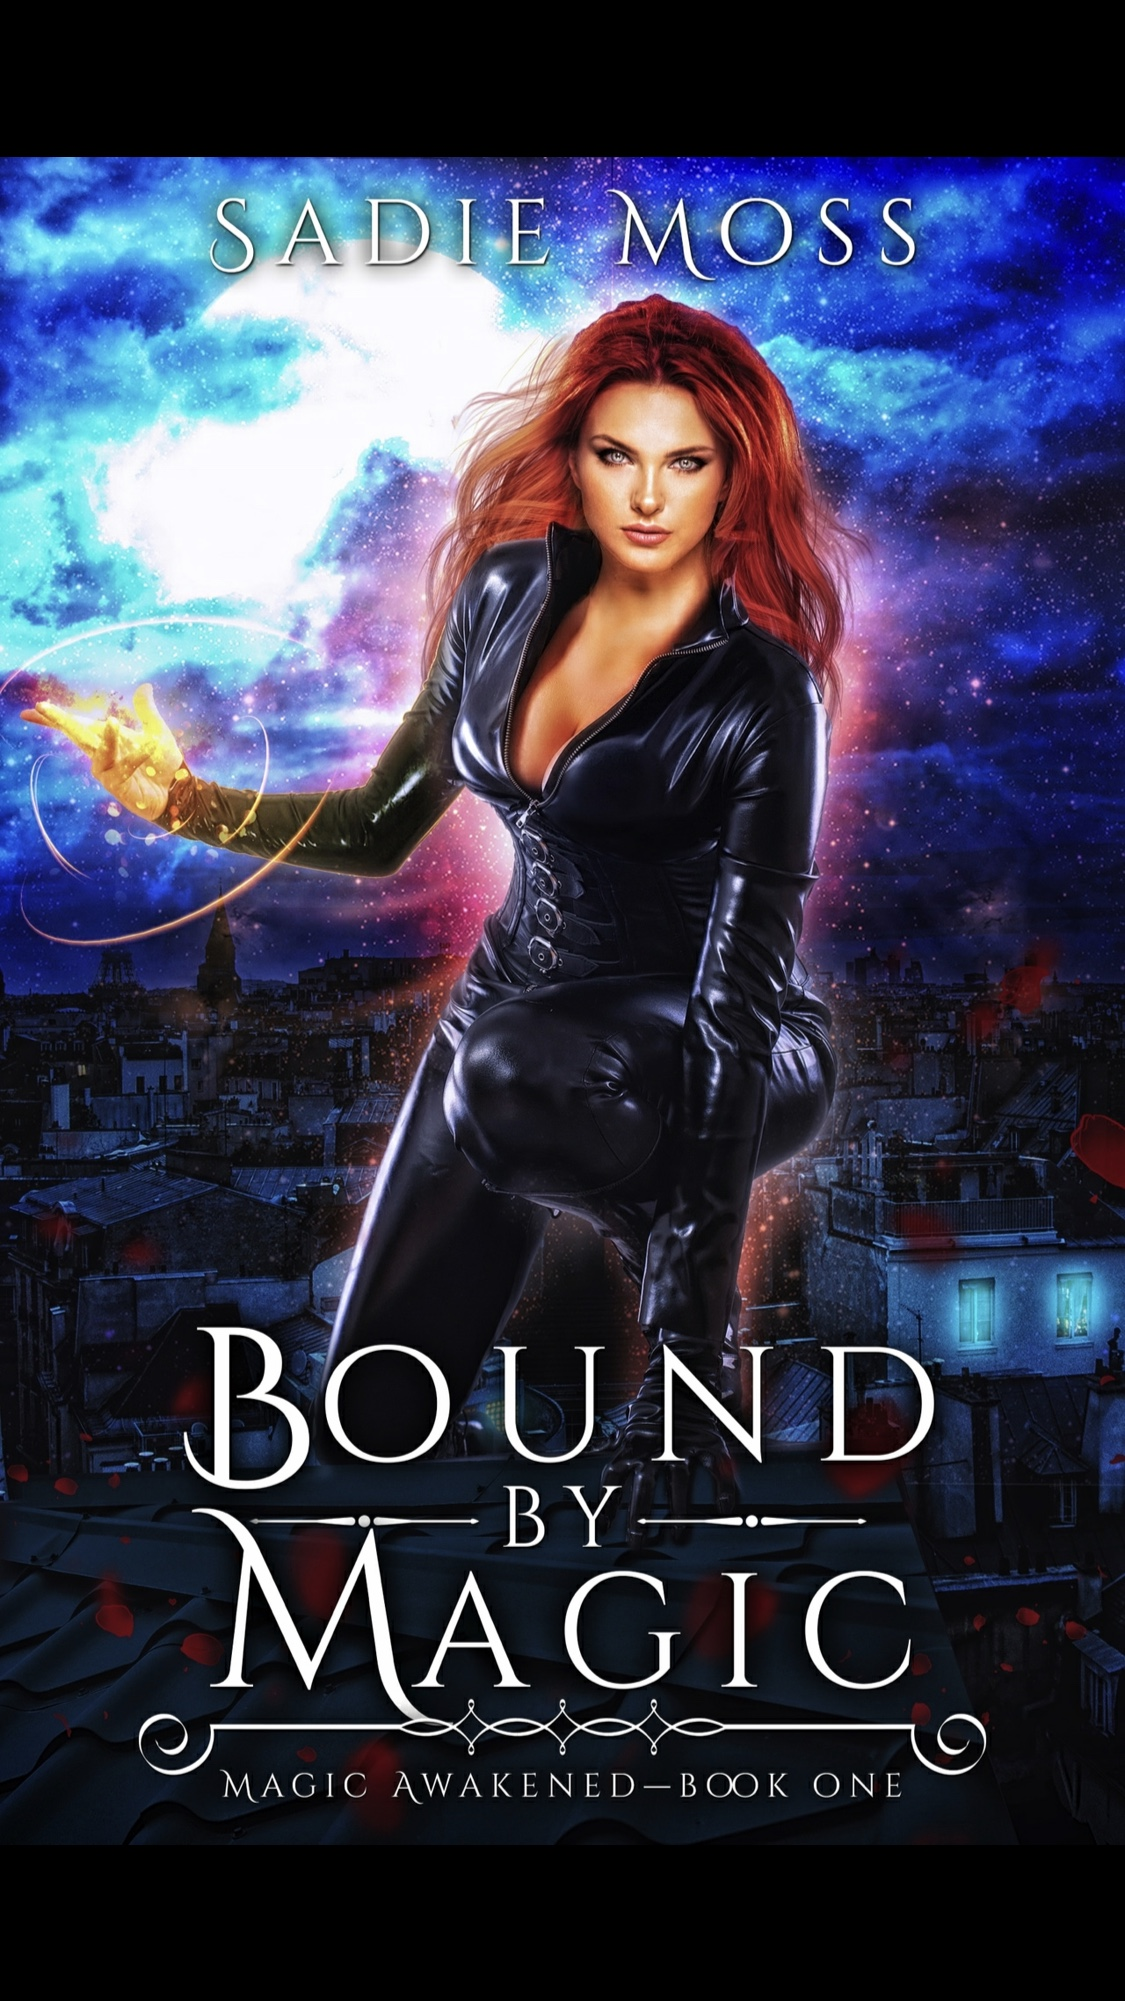 Bound Magic by Sadie Moss – Book Review